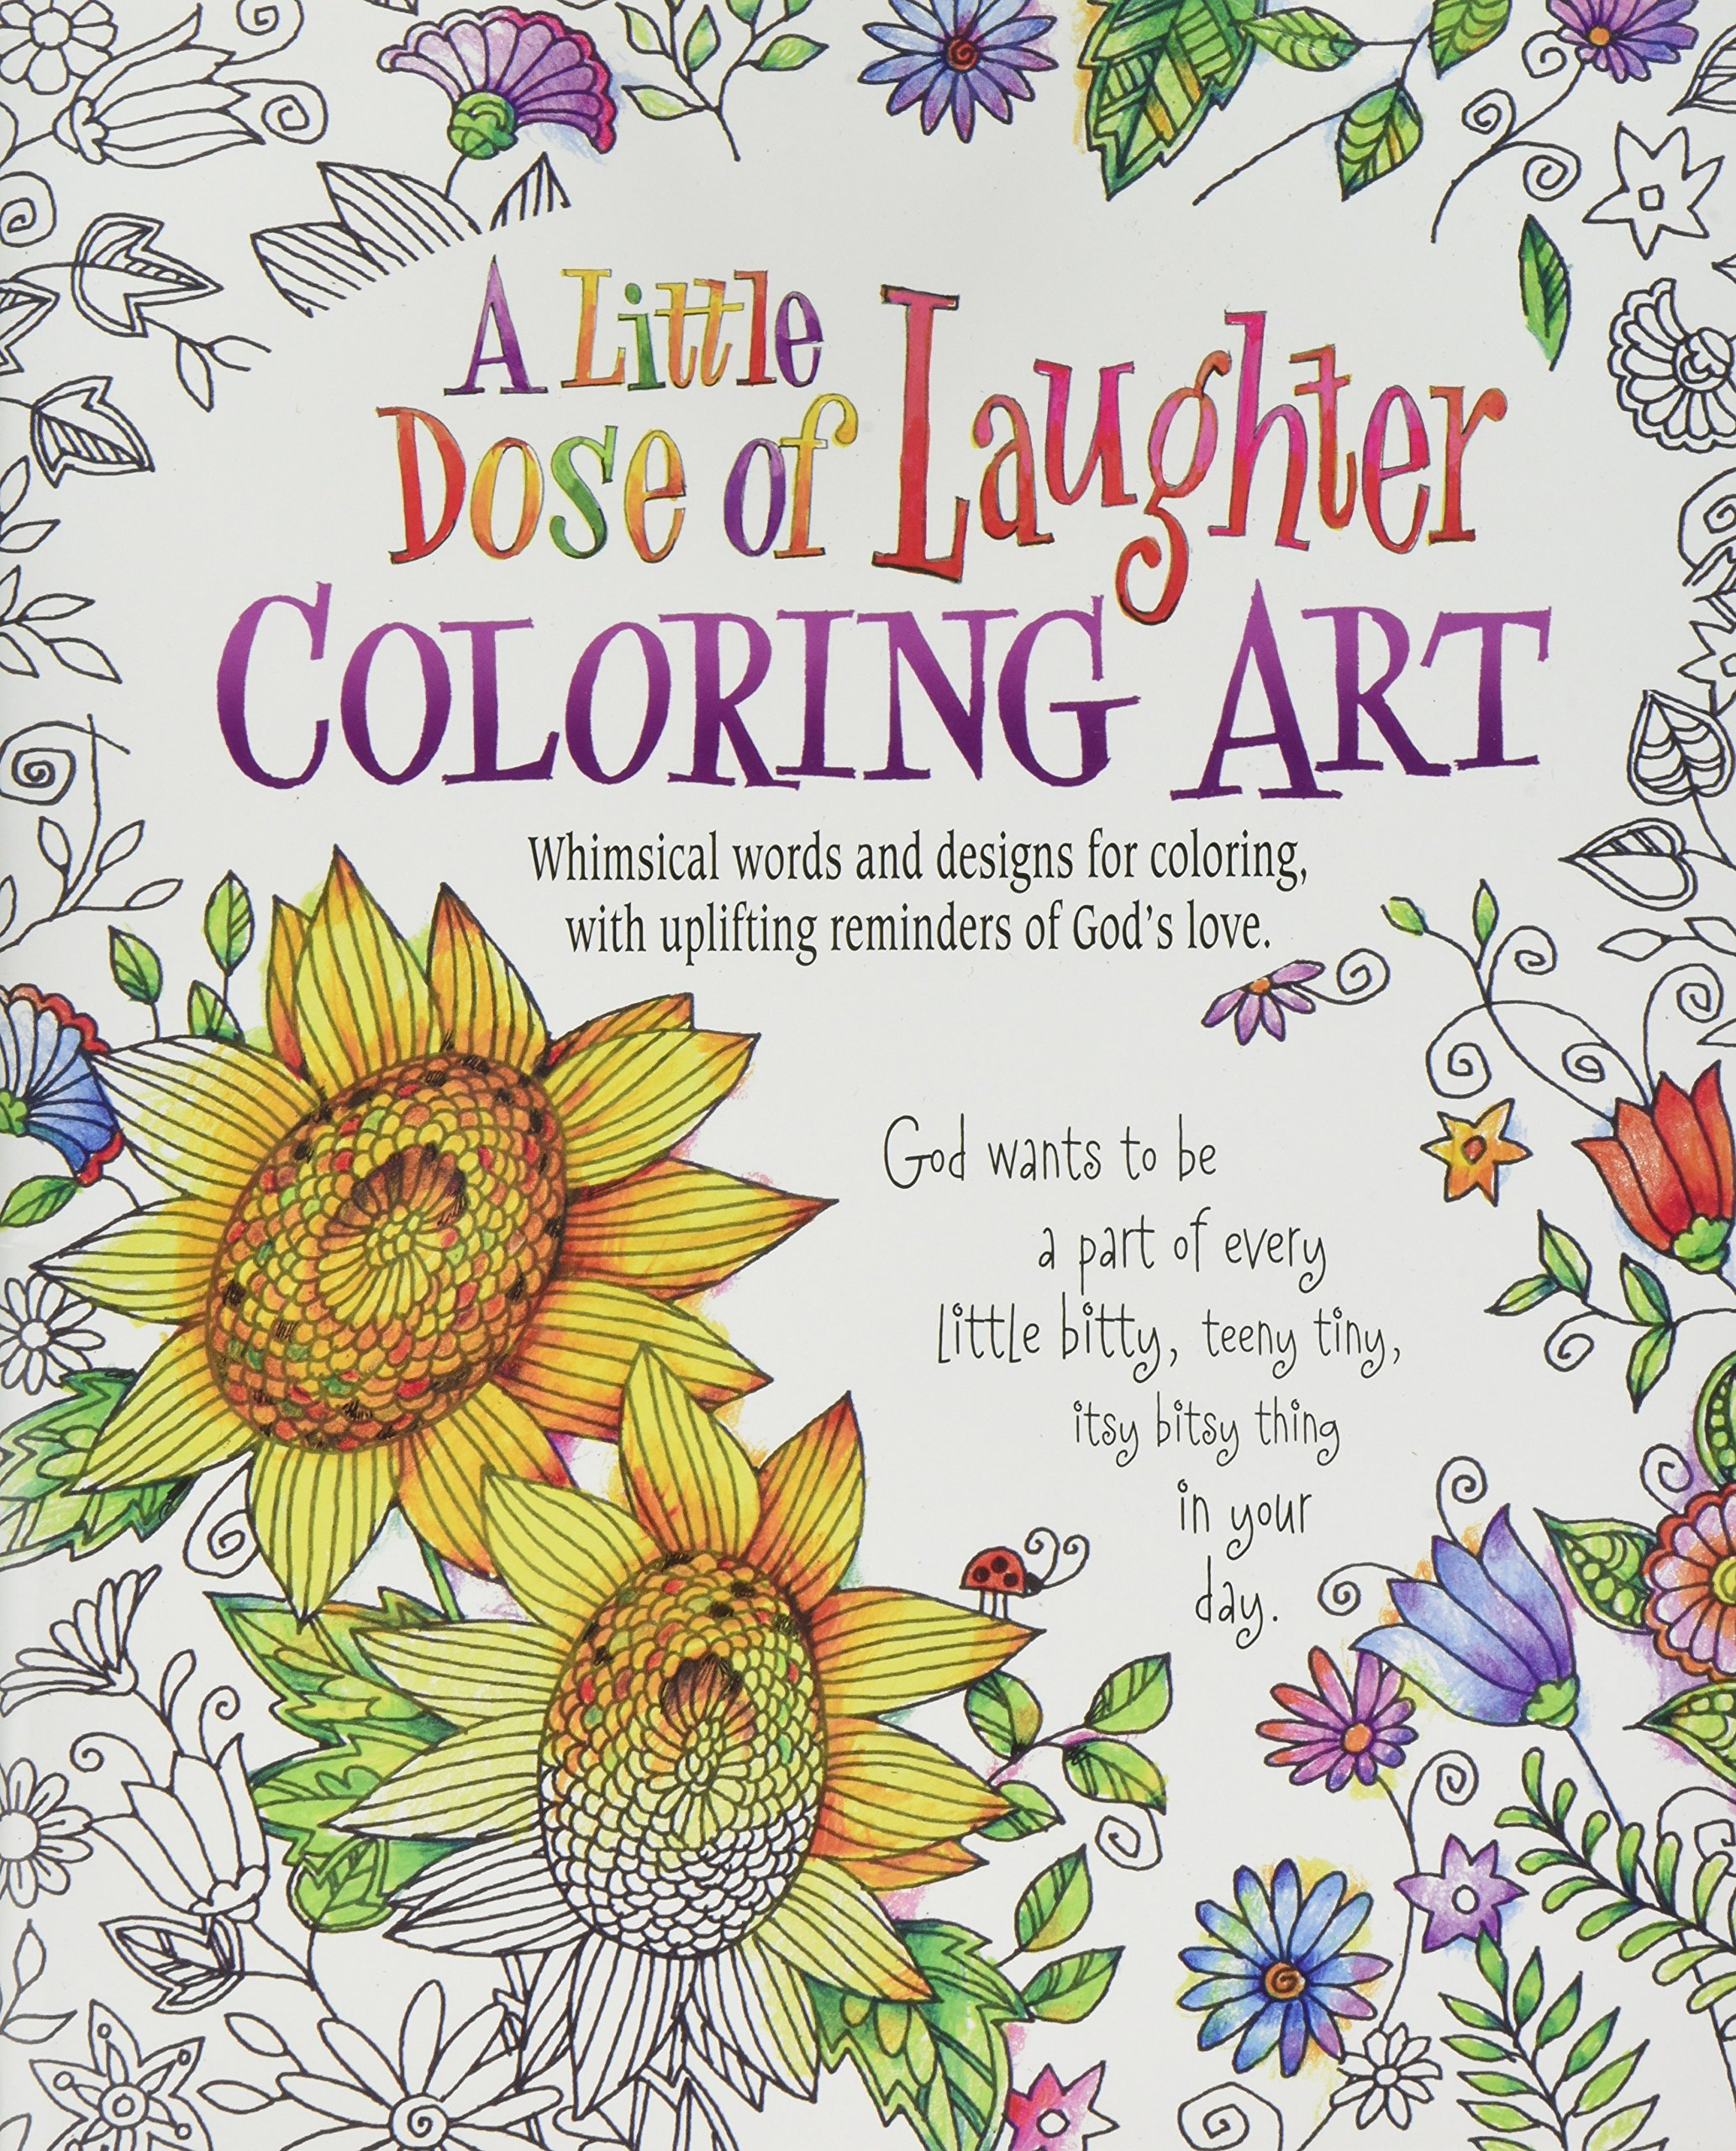 - Amazon.com: A Little Dose Of Laughter Coloring Art (9780996806787